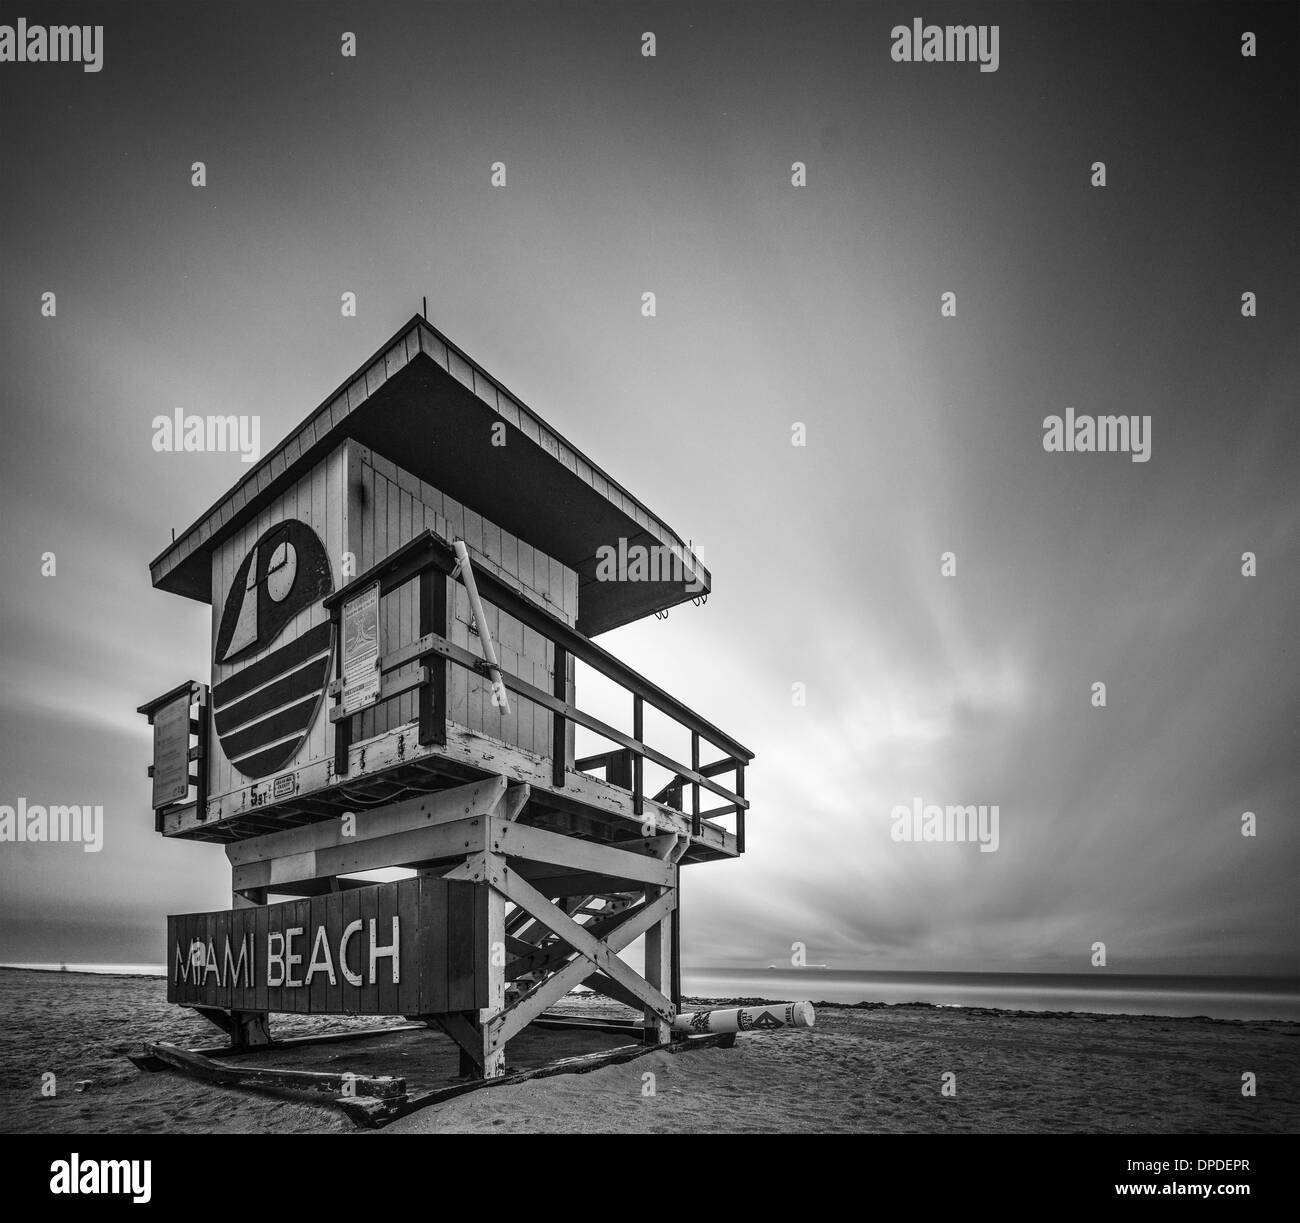 MIAMI, FLORIDA - JANUARY 9, 2013: A lifeguard tower on Miami Beach. Each tower on the beach exhibits a unique architecture. - Stock Image